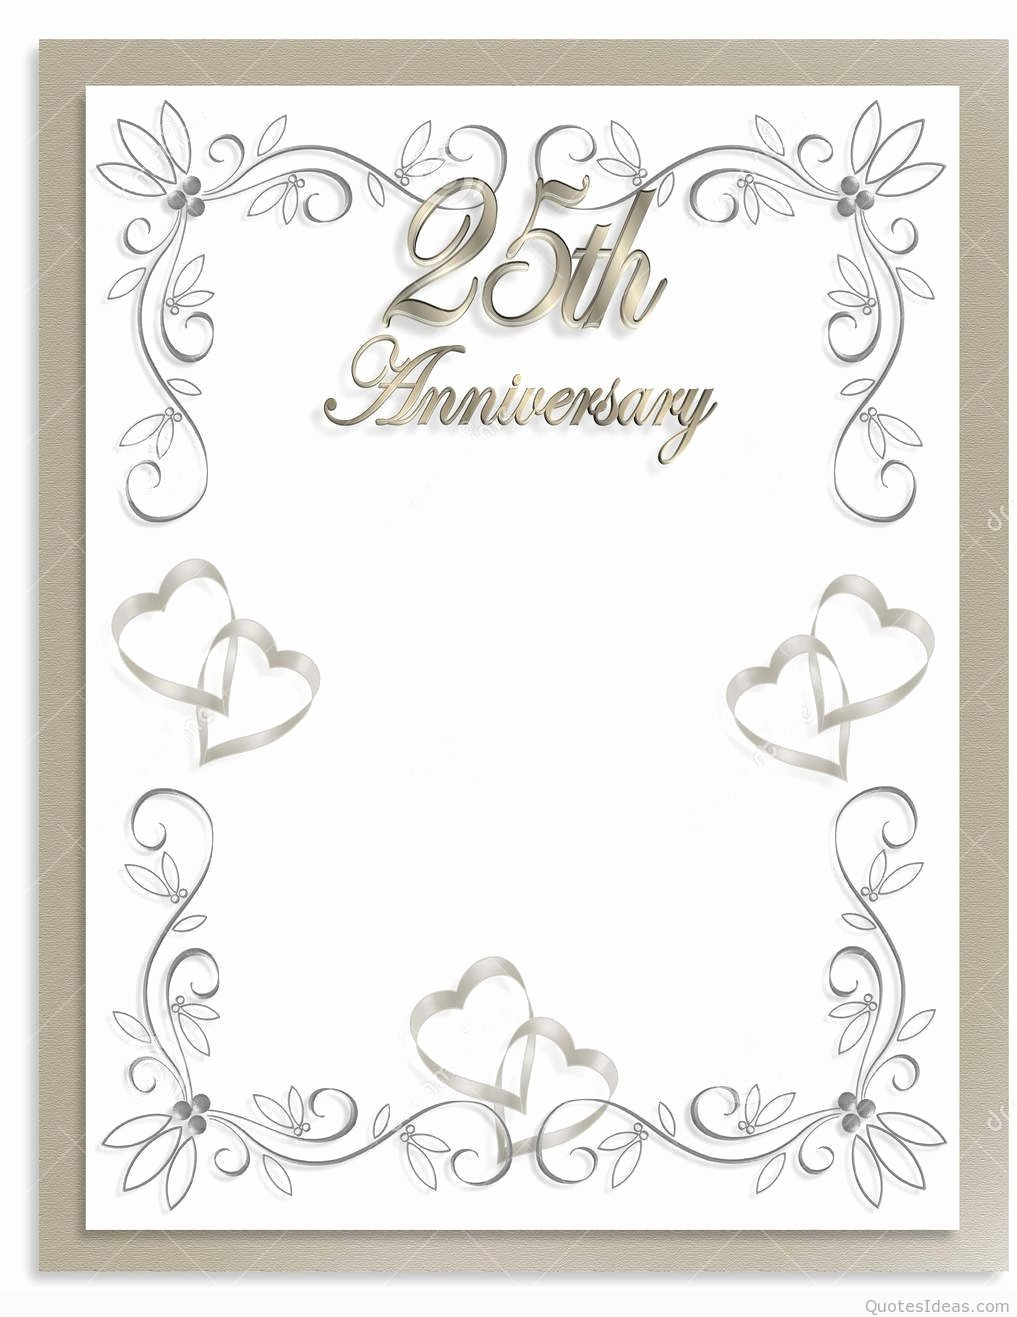 Wedding Anniversary Invite Template Inspirational Anniversary Invitations Free 25th Wedding Anniversary